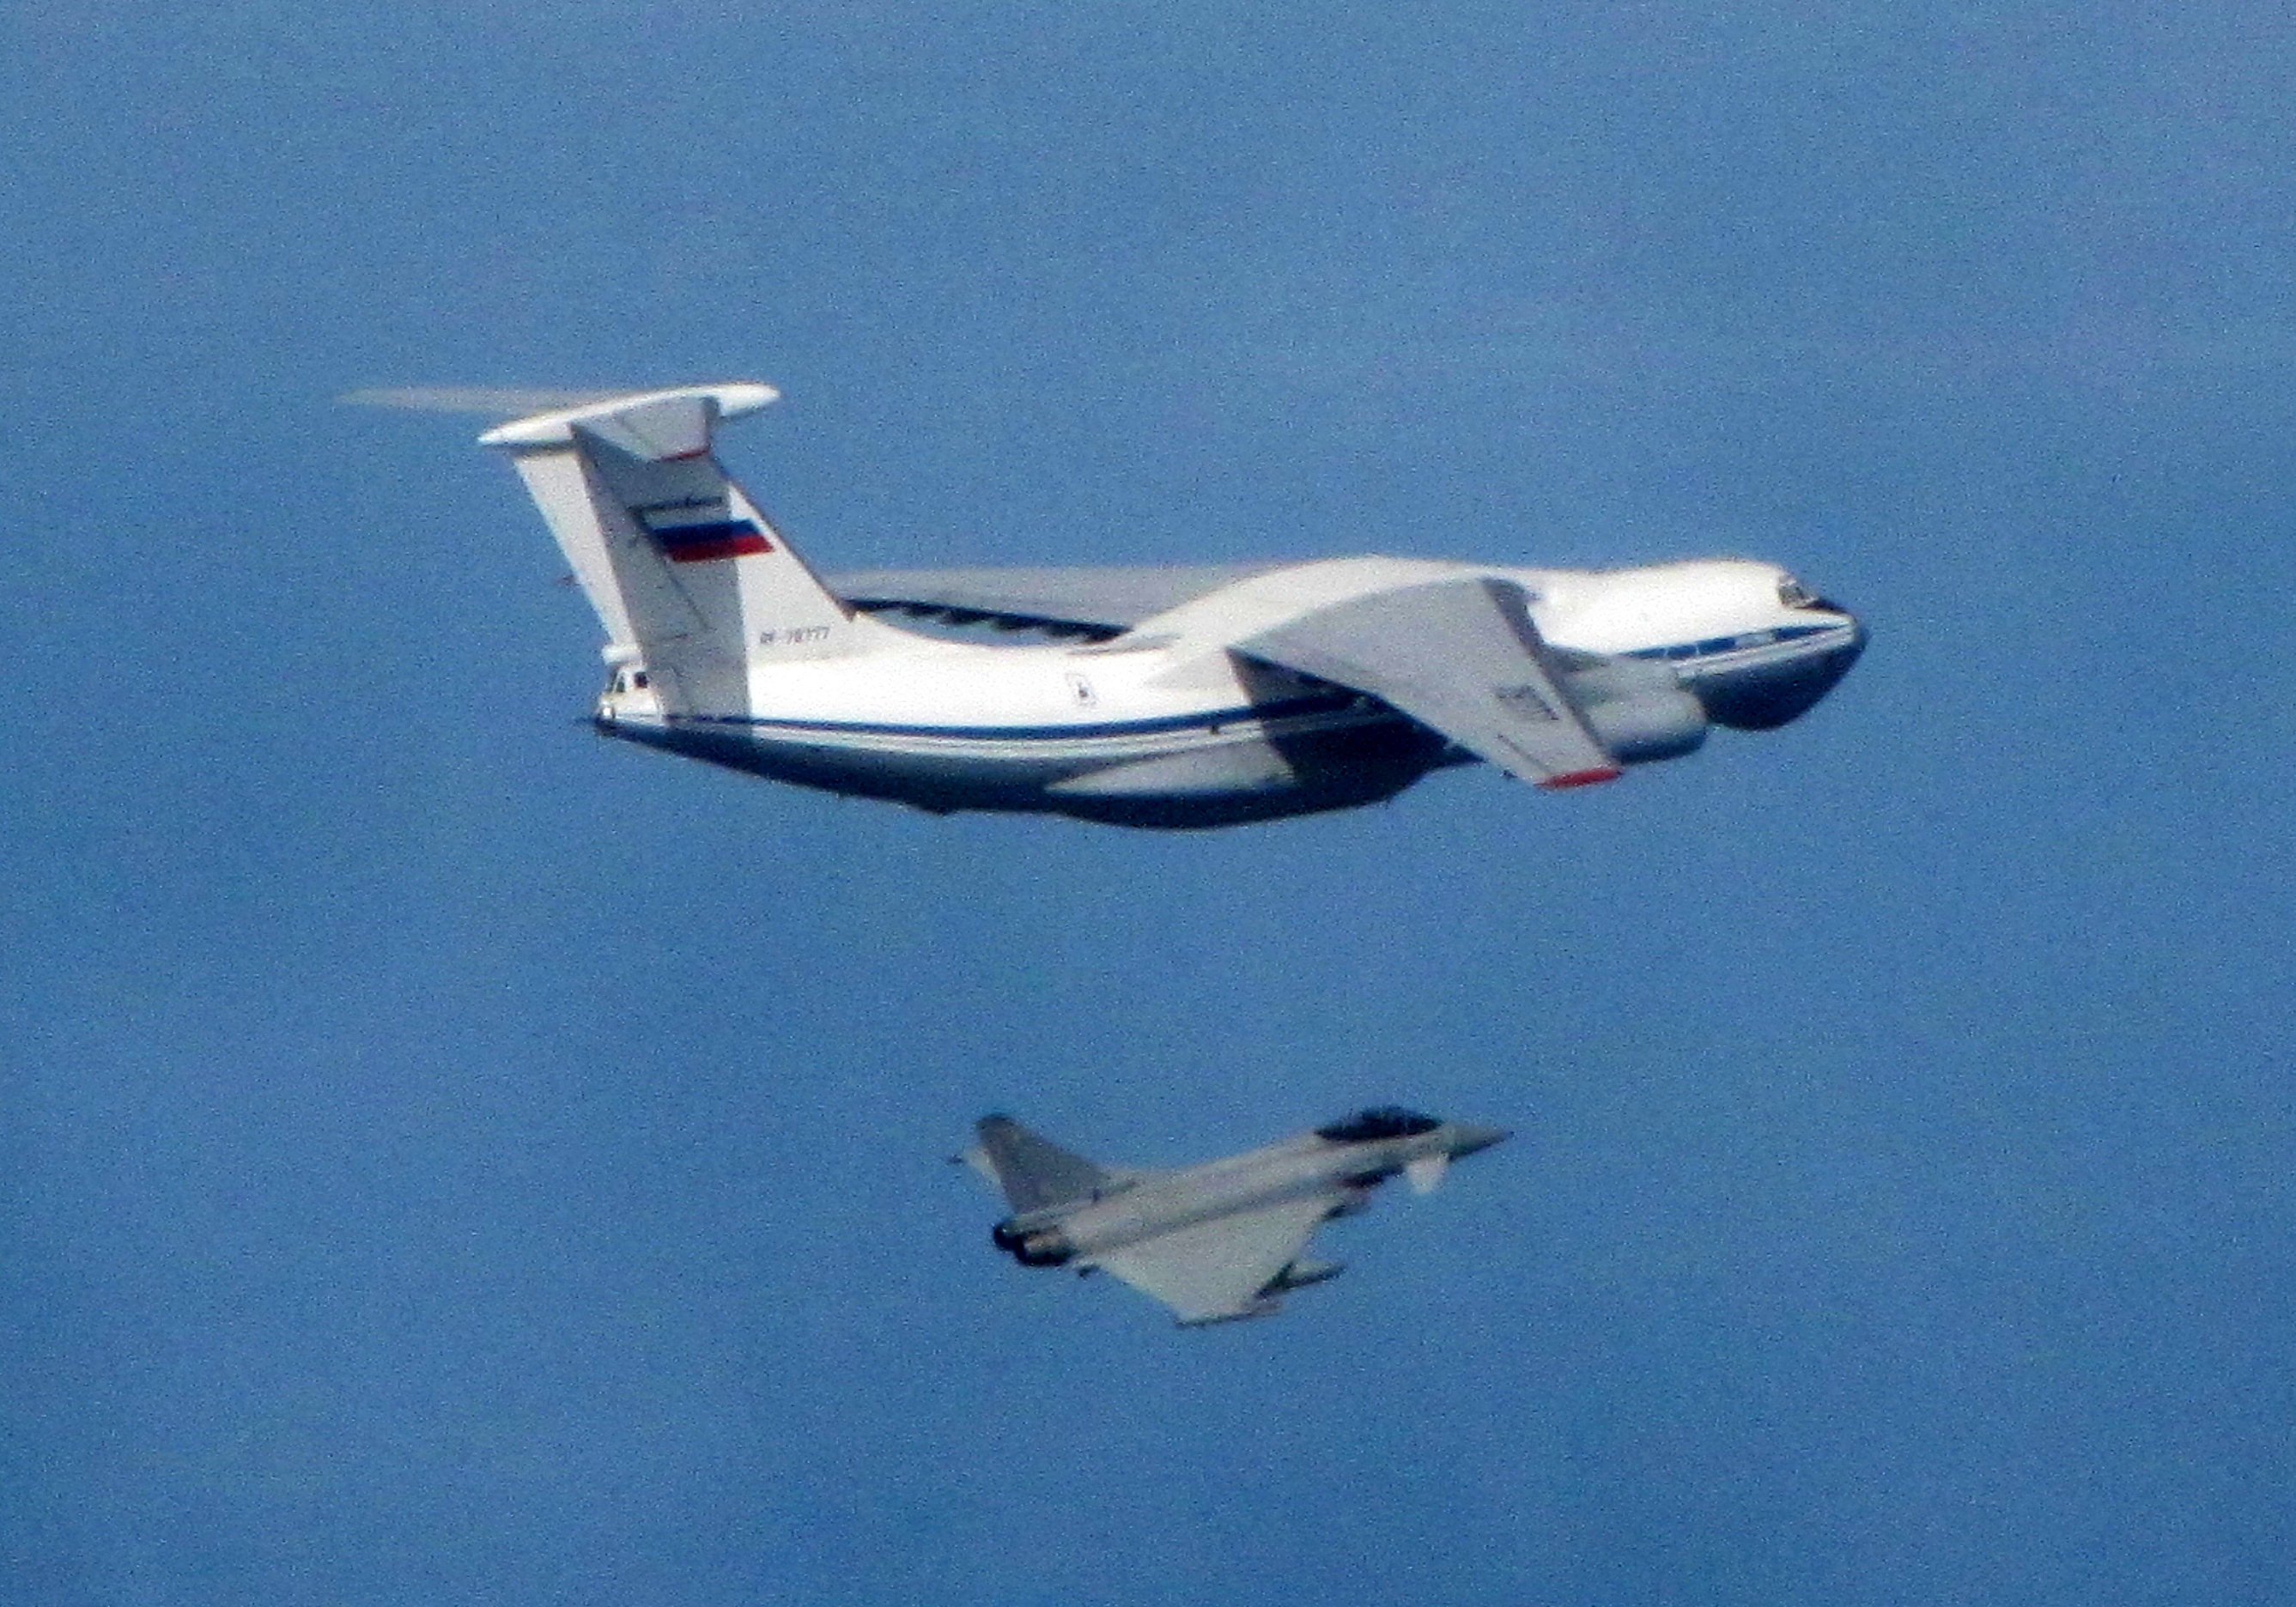 Russian IL76 Candid aircraft, being shadowed by a RAF Typhoon (bottom).